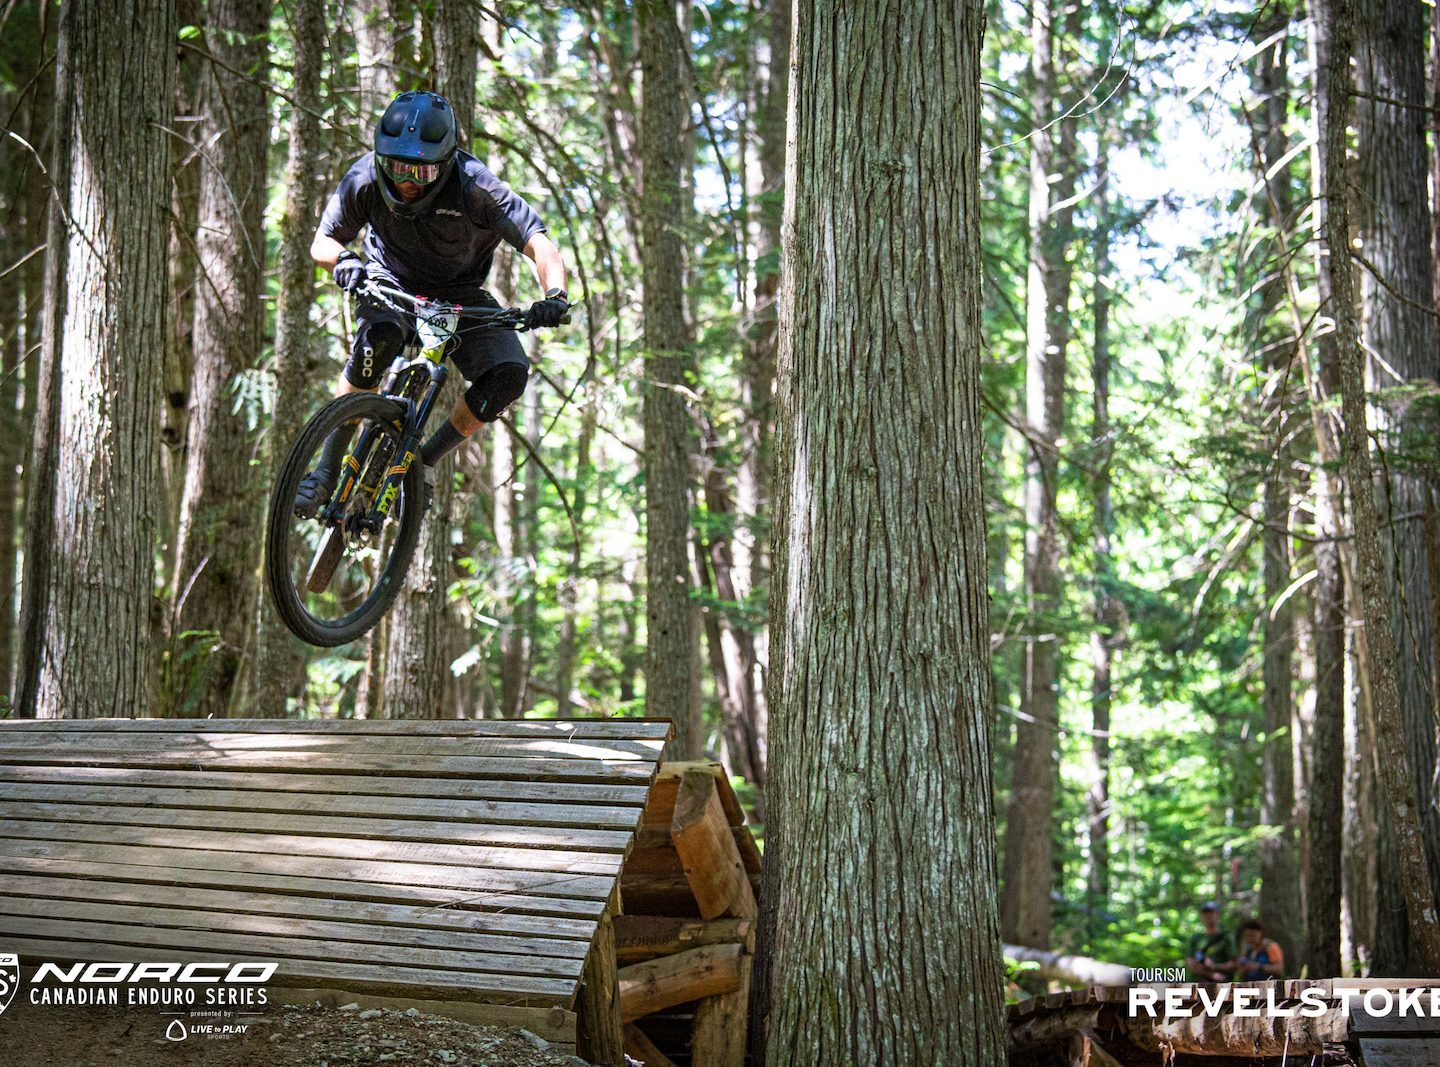 Stay Revy - The Nest